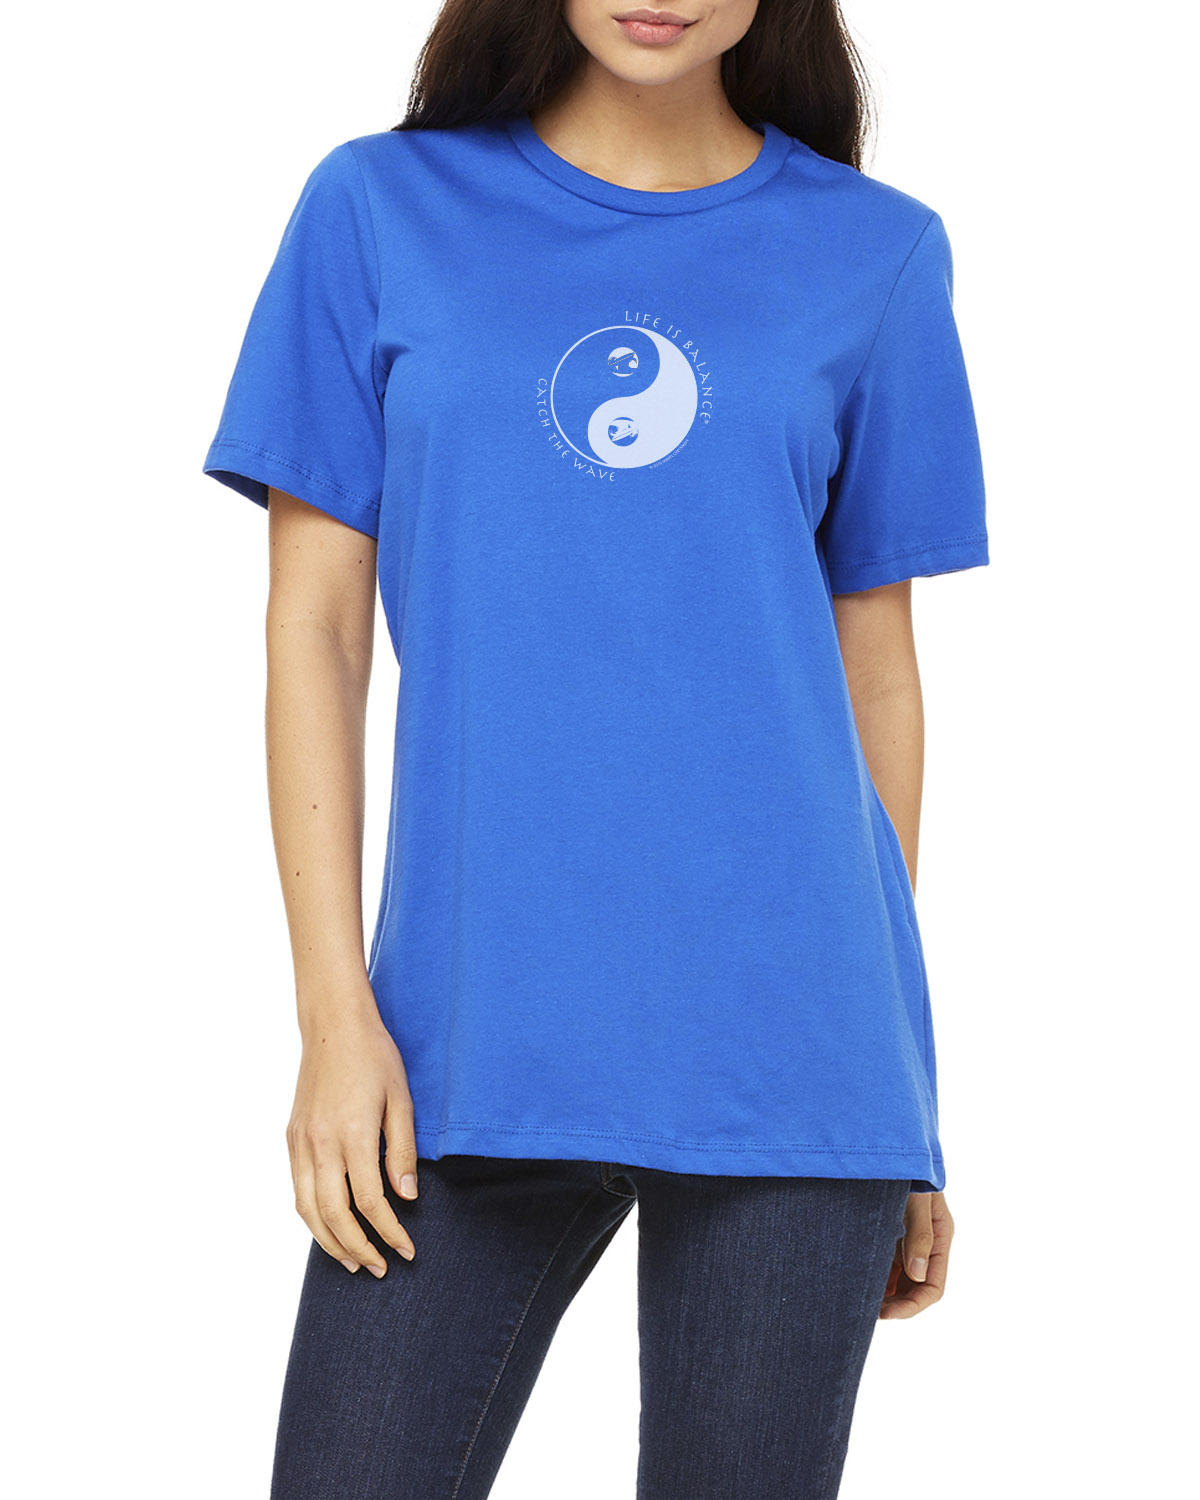 Women's short sleeve surfing t-shirt (royal)